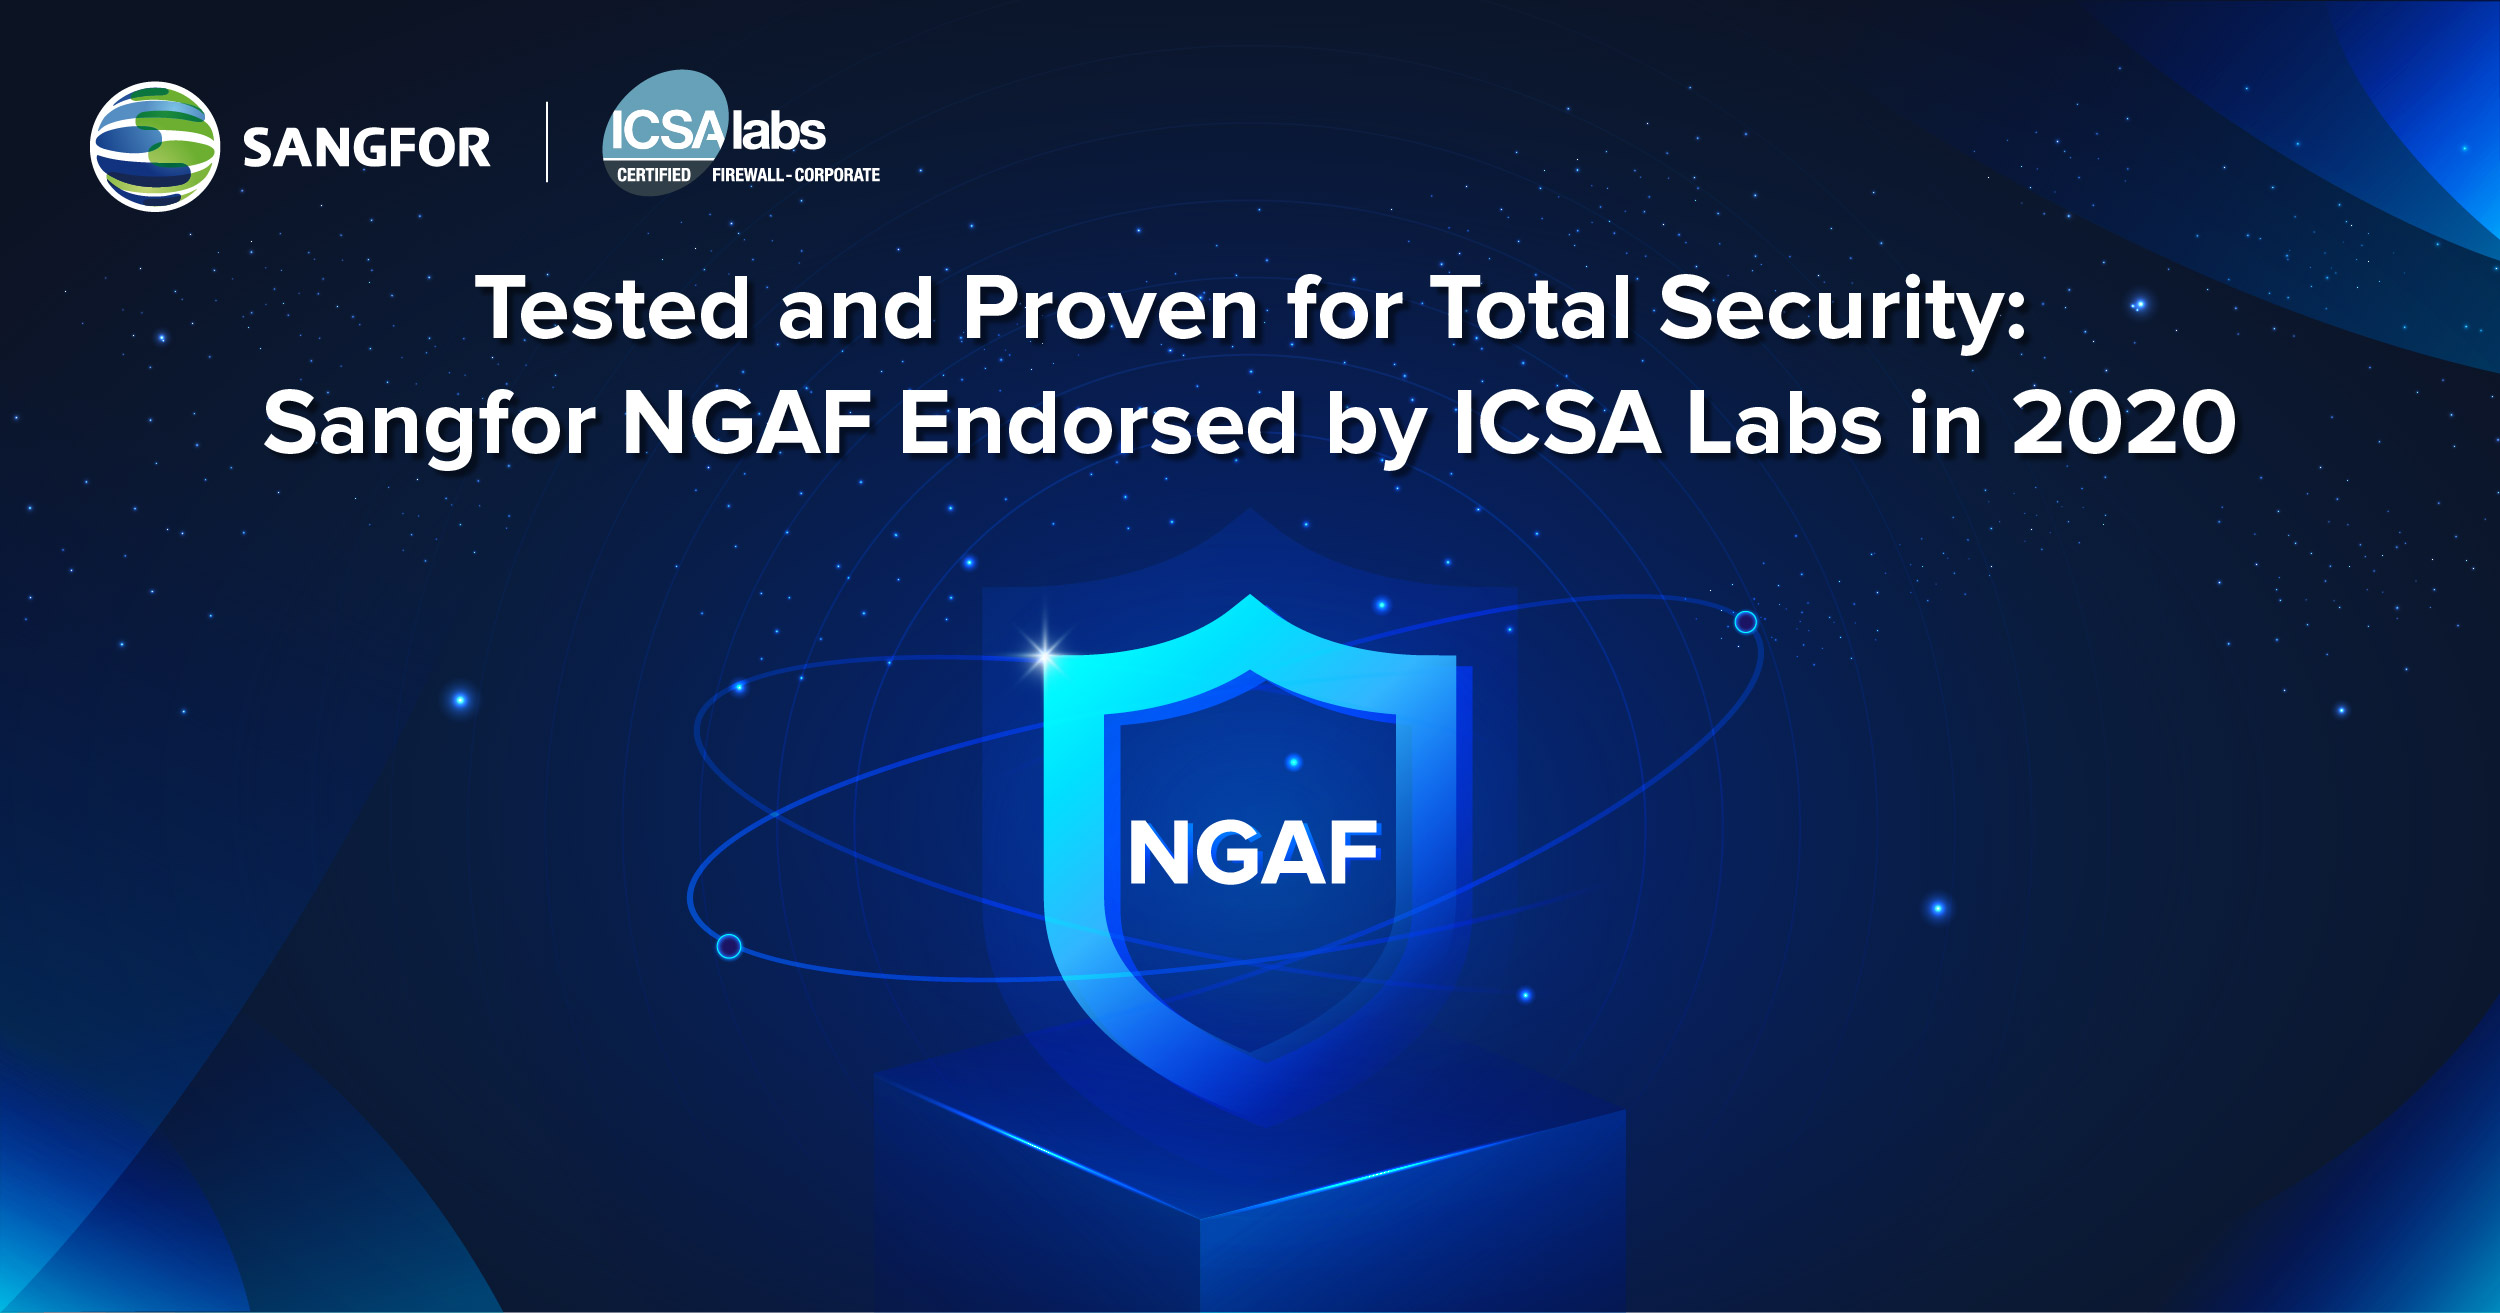 Tested and Proven for Total Security: Sangfor NGAF Endorsed by ICSA Labs in 2020